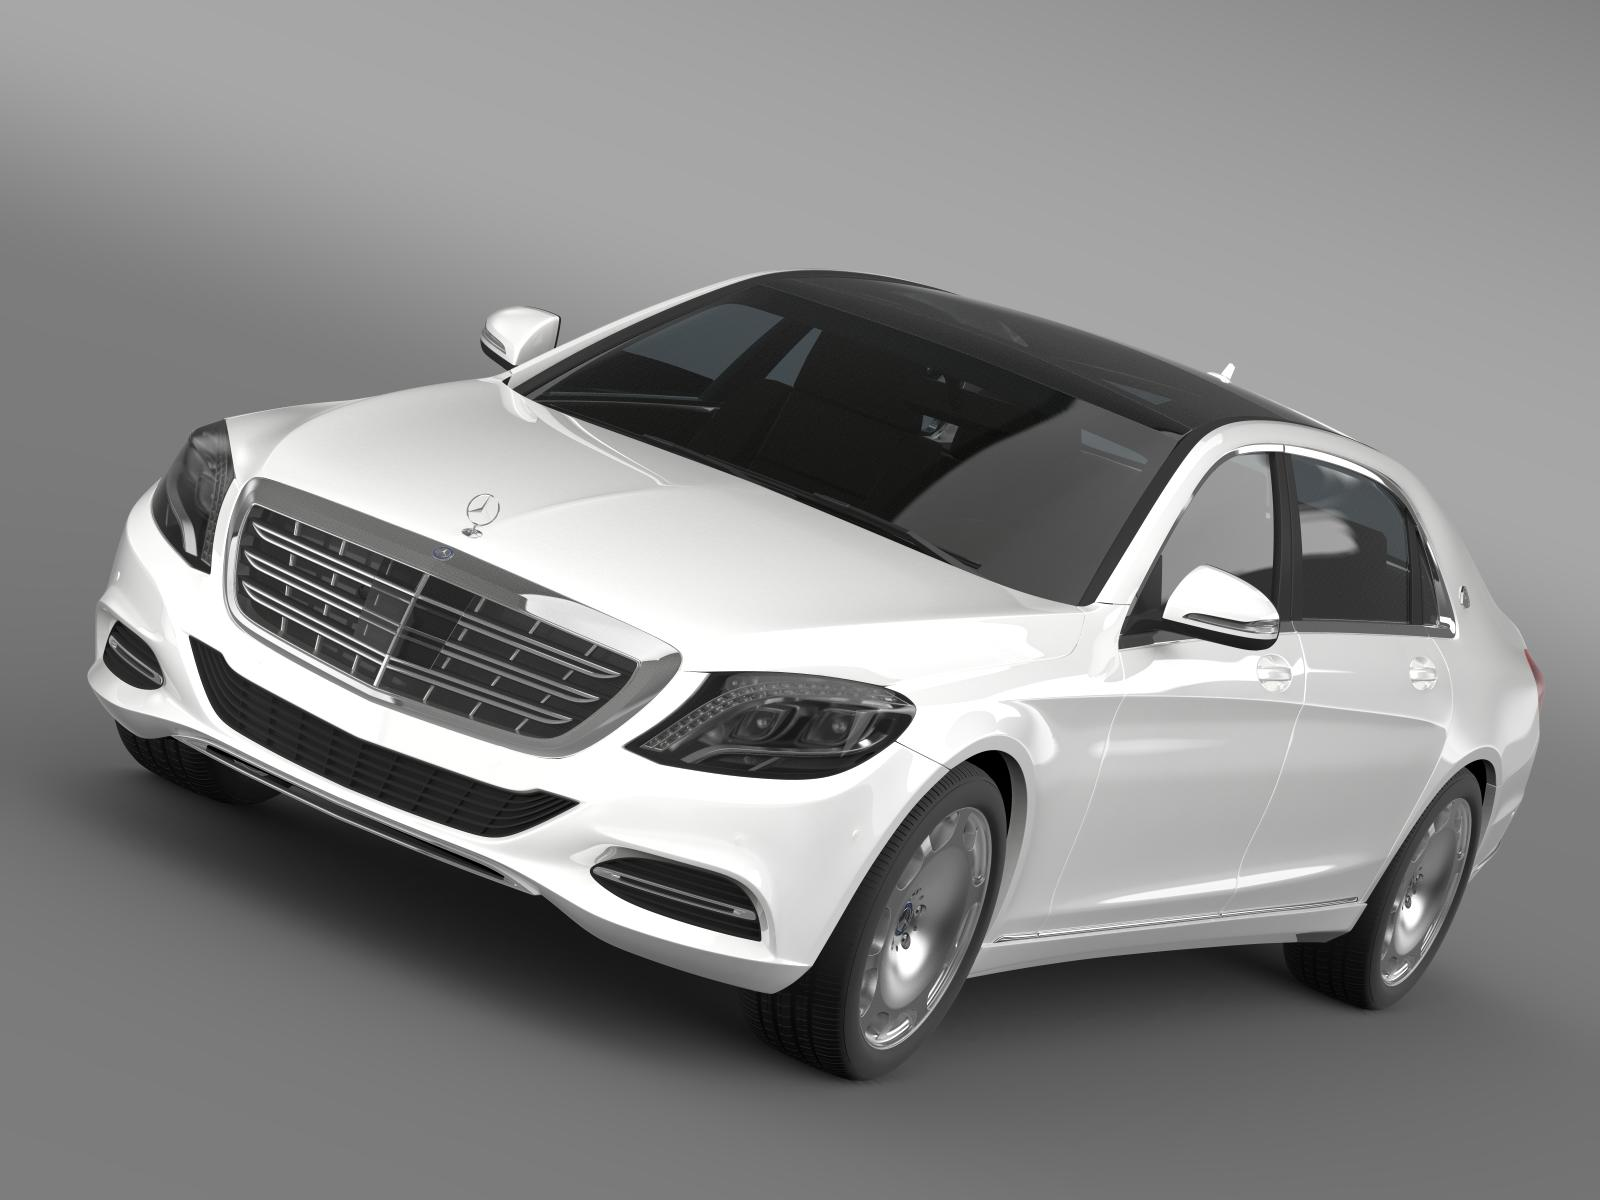 mercedes maybach s400 x222 2015 3d model 3ds max fbx c4d lwo ma mb hrc xsi obj 166116